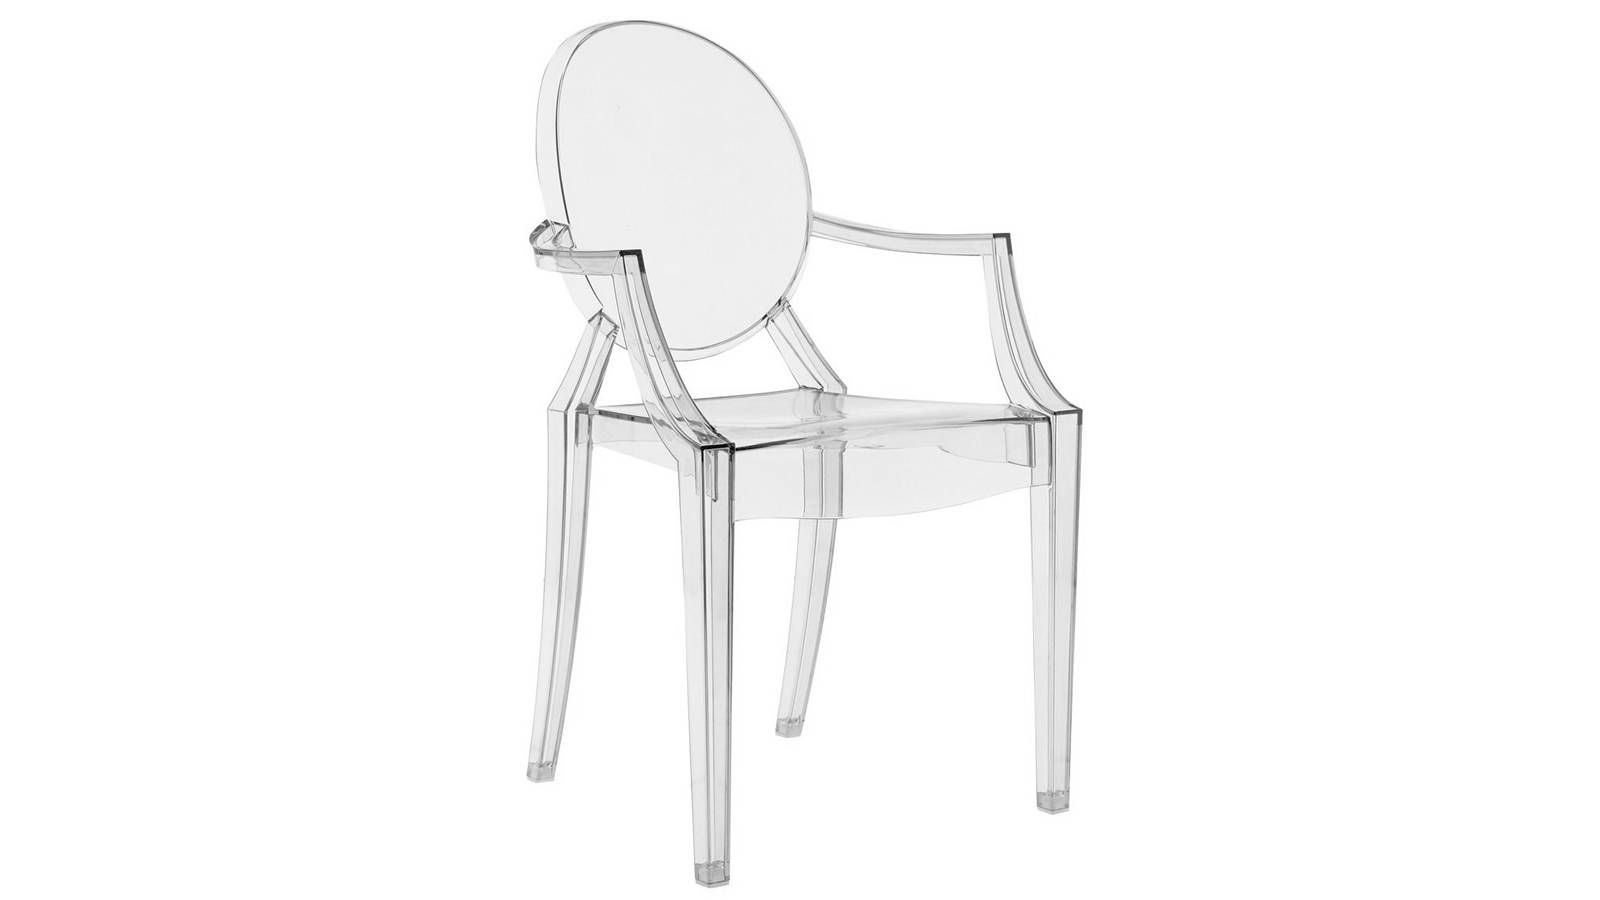 Silla Louis Ghost transparente. Phillippe Starck